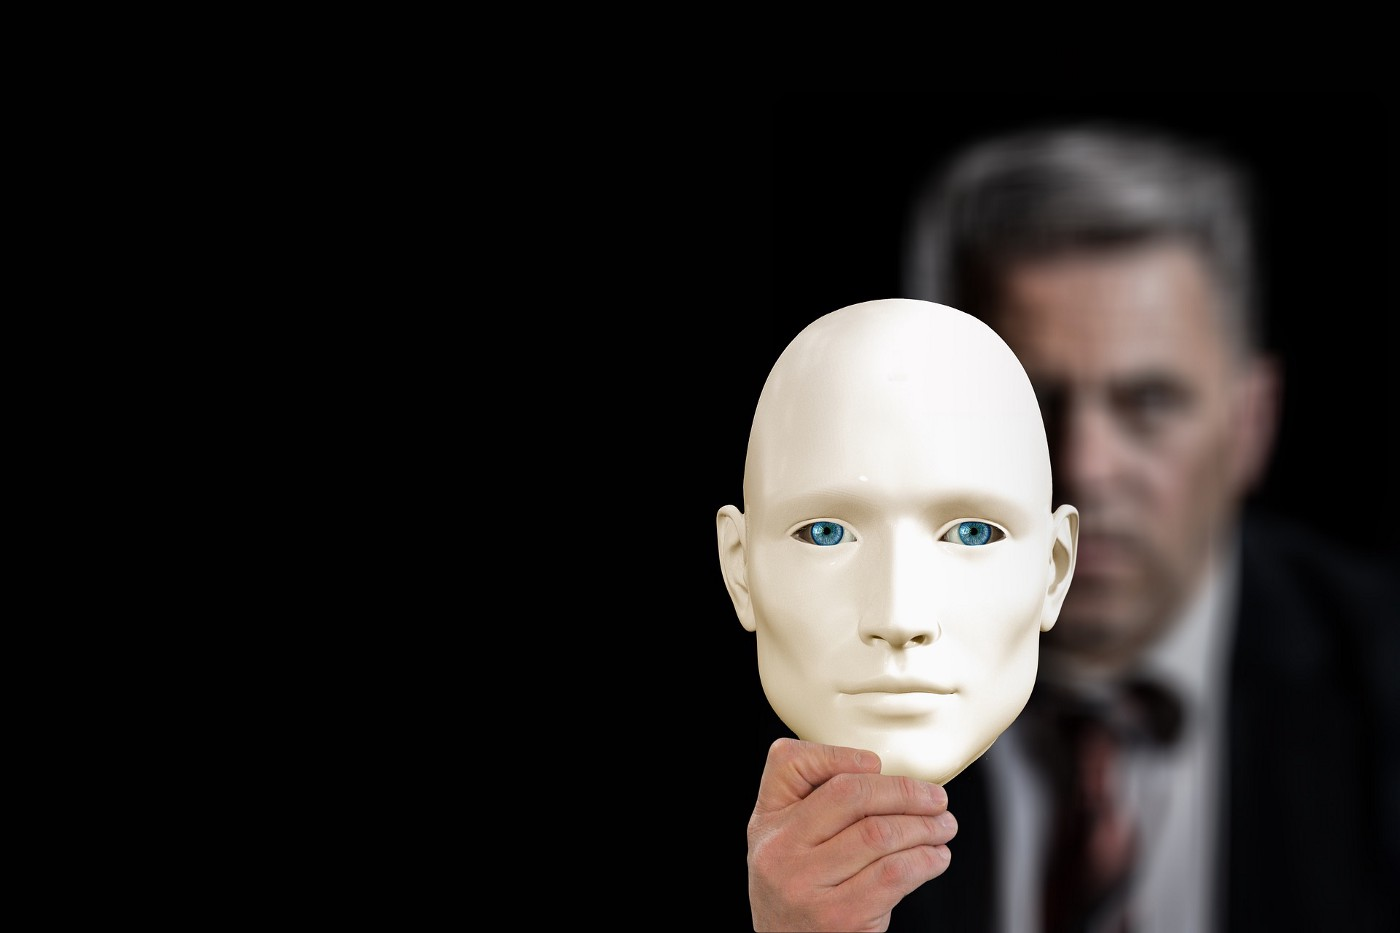 covert narcissist with the narcissistic mask on display